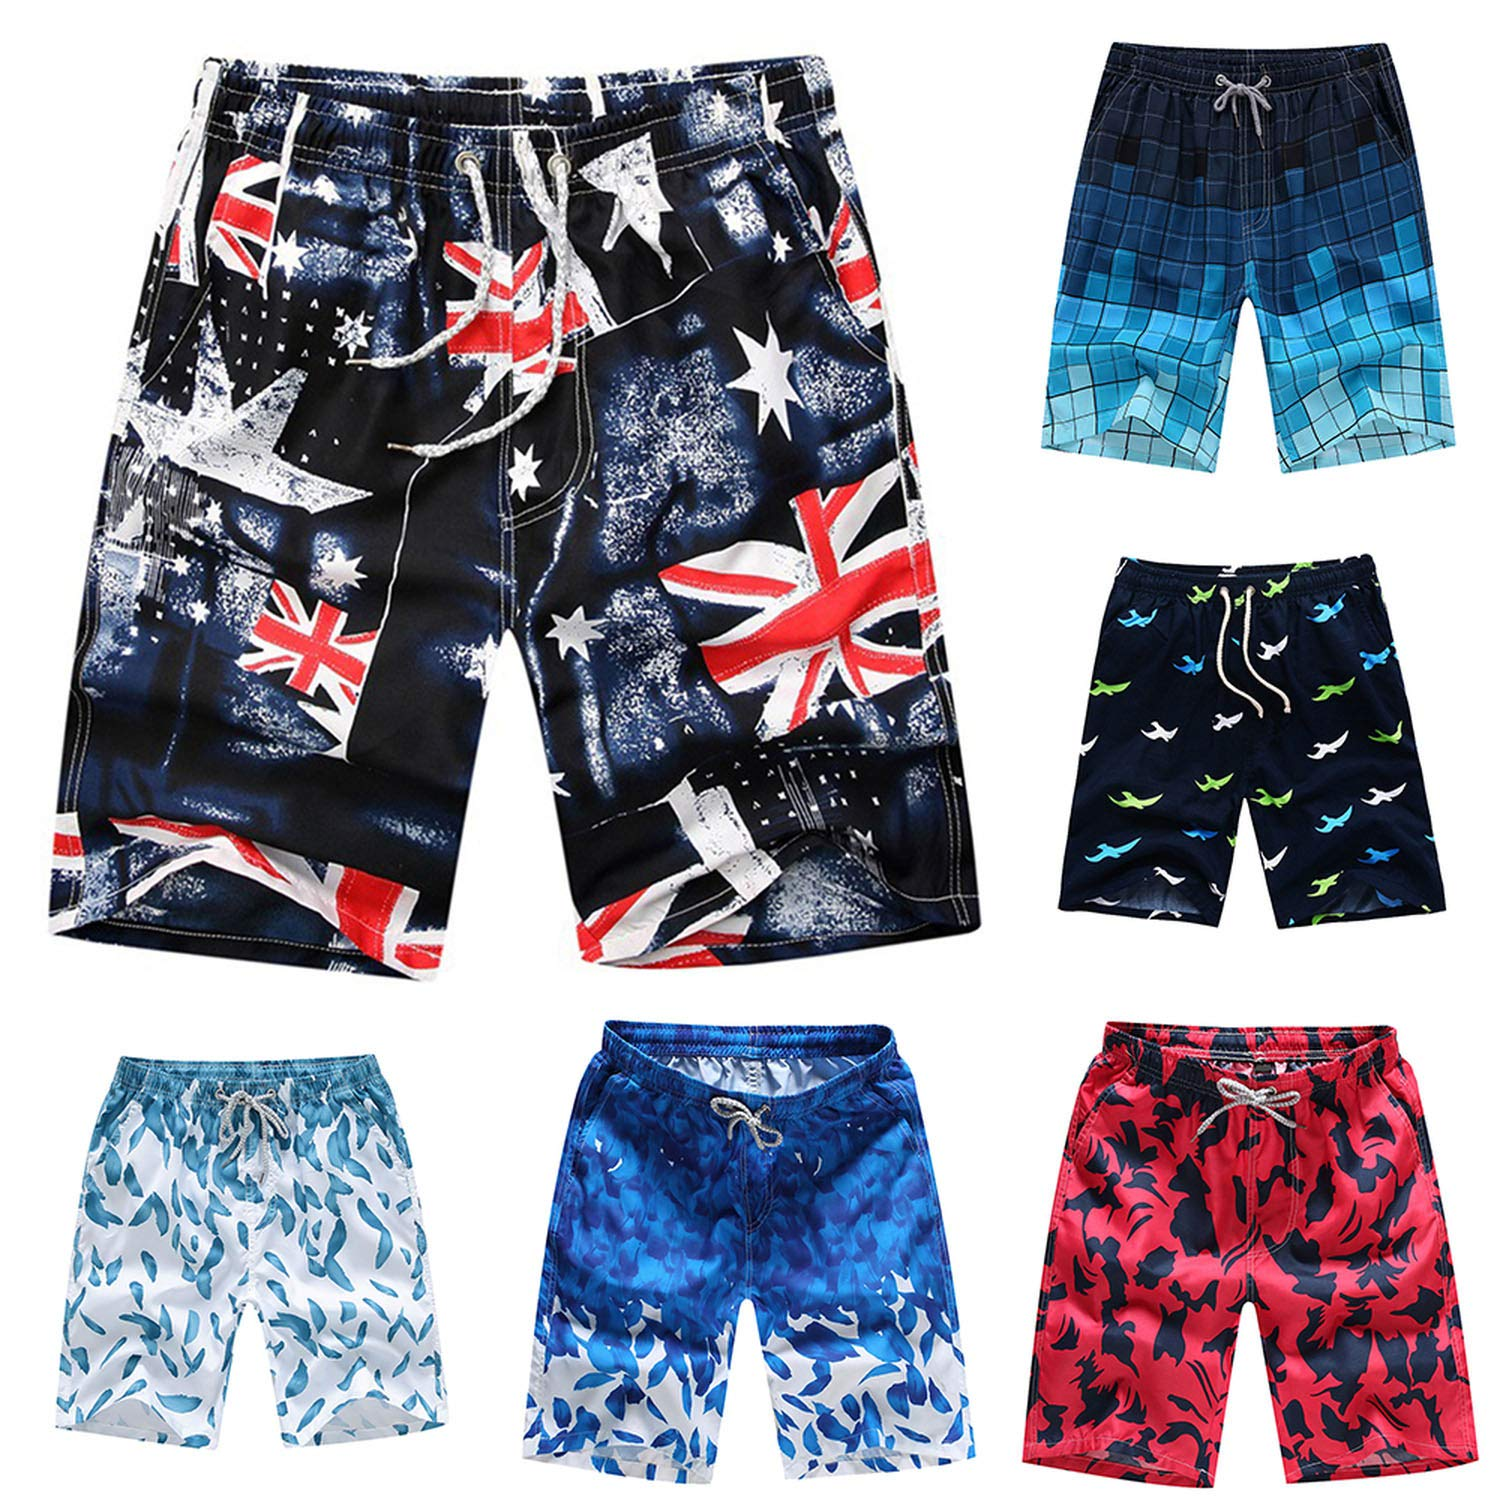 TZJY-Store 2019 New Printed Loose Cord Beach Board Short Mens Casual Shorts,Verde,M